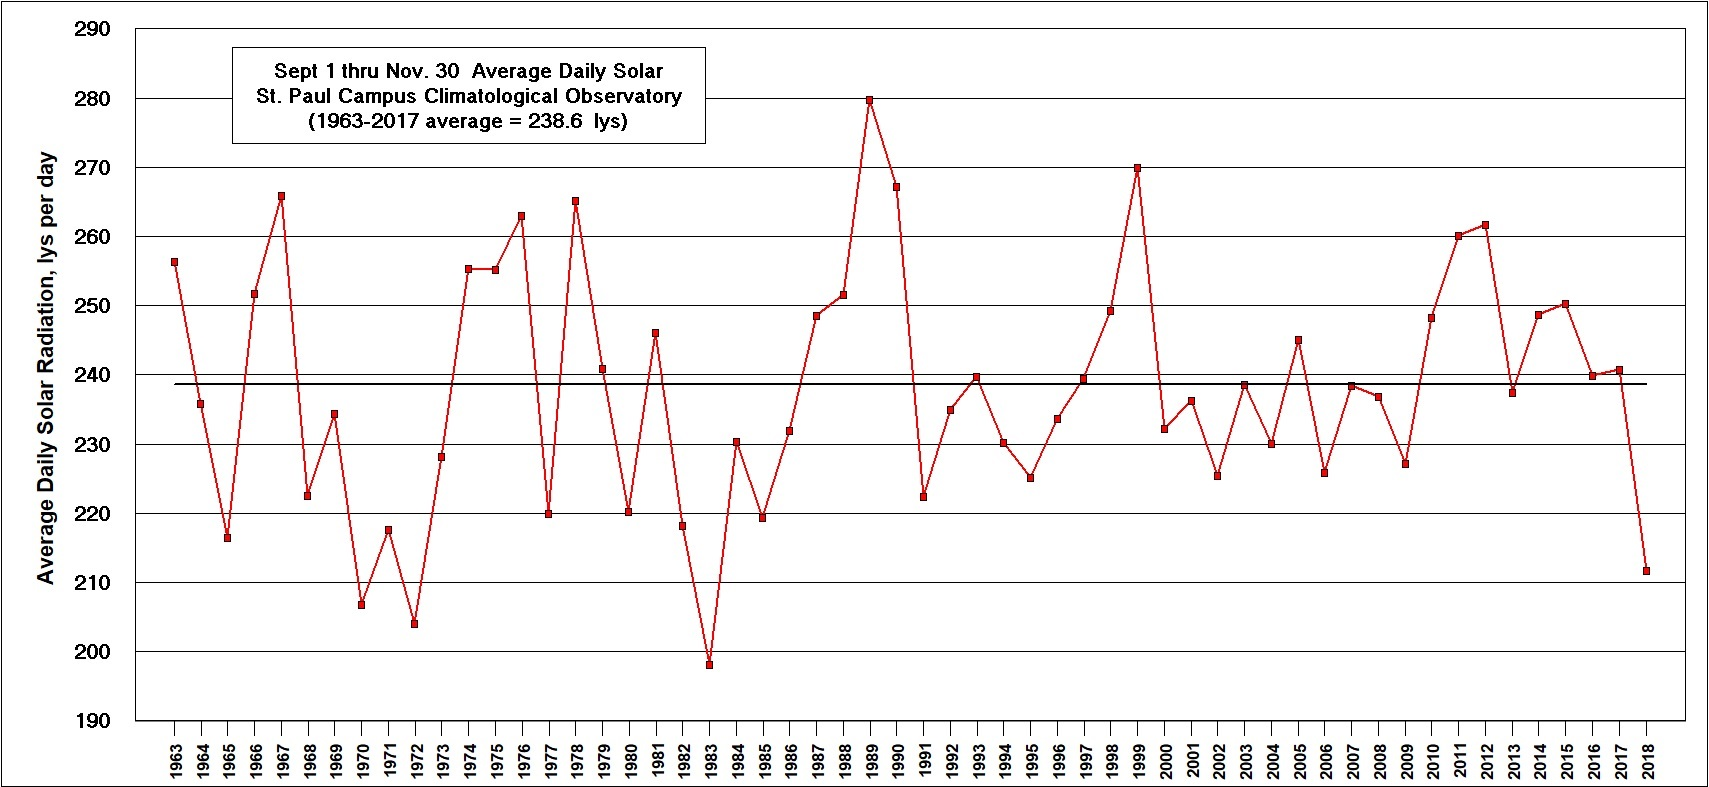 Solar Radiation for September 1 to November 30 from the U of M St. Paul Campus